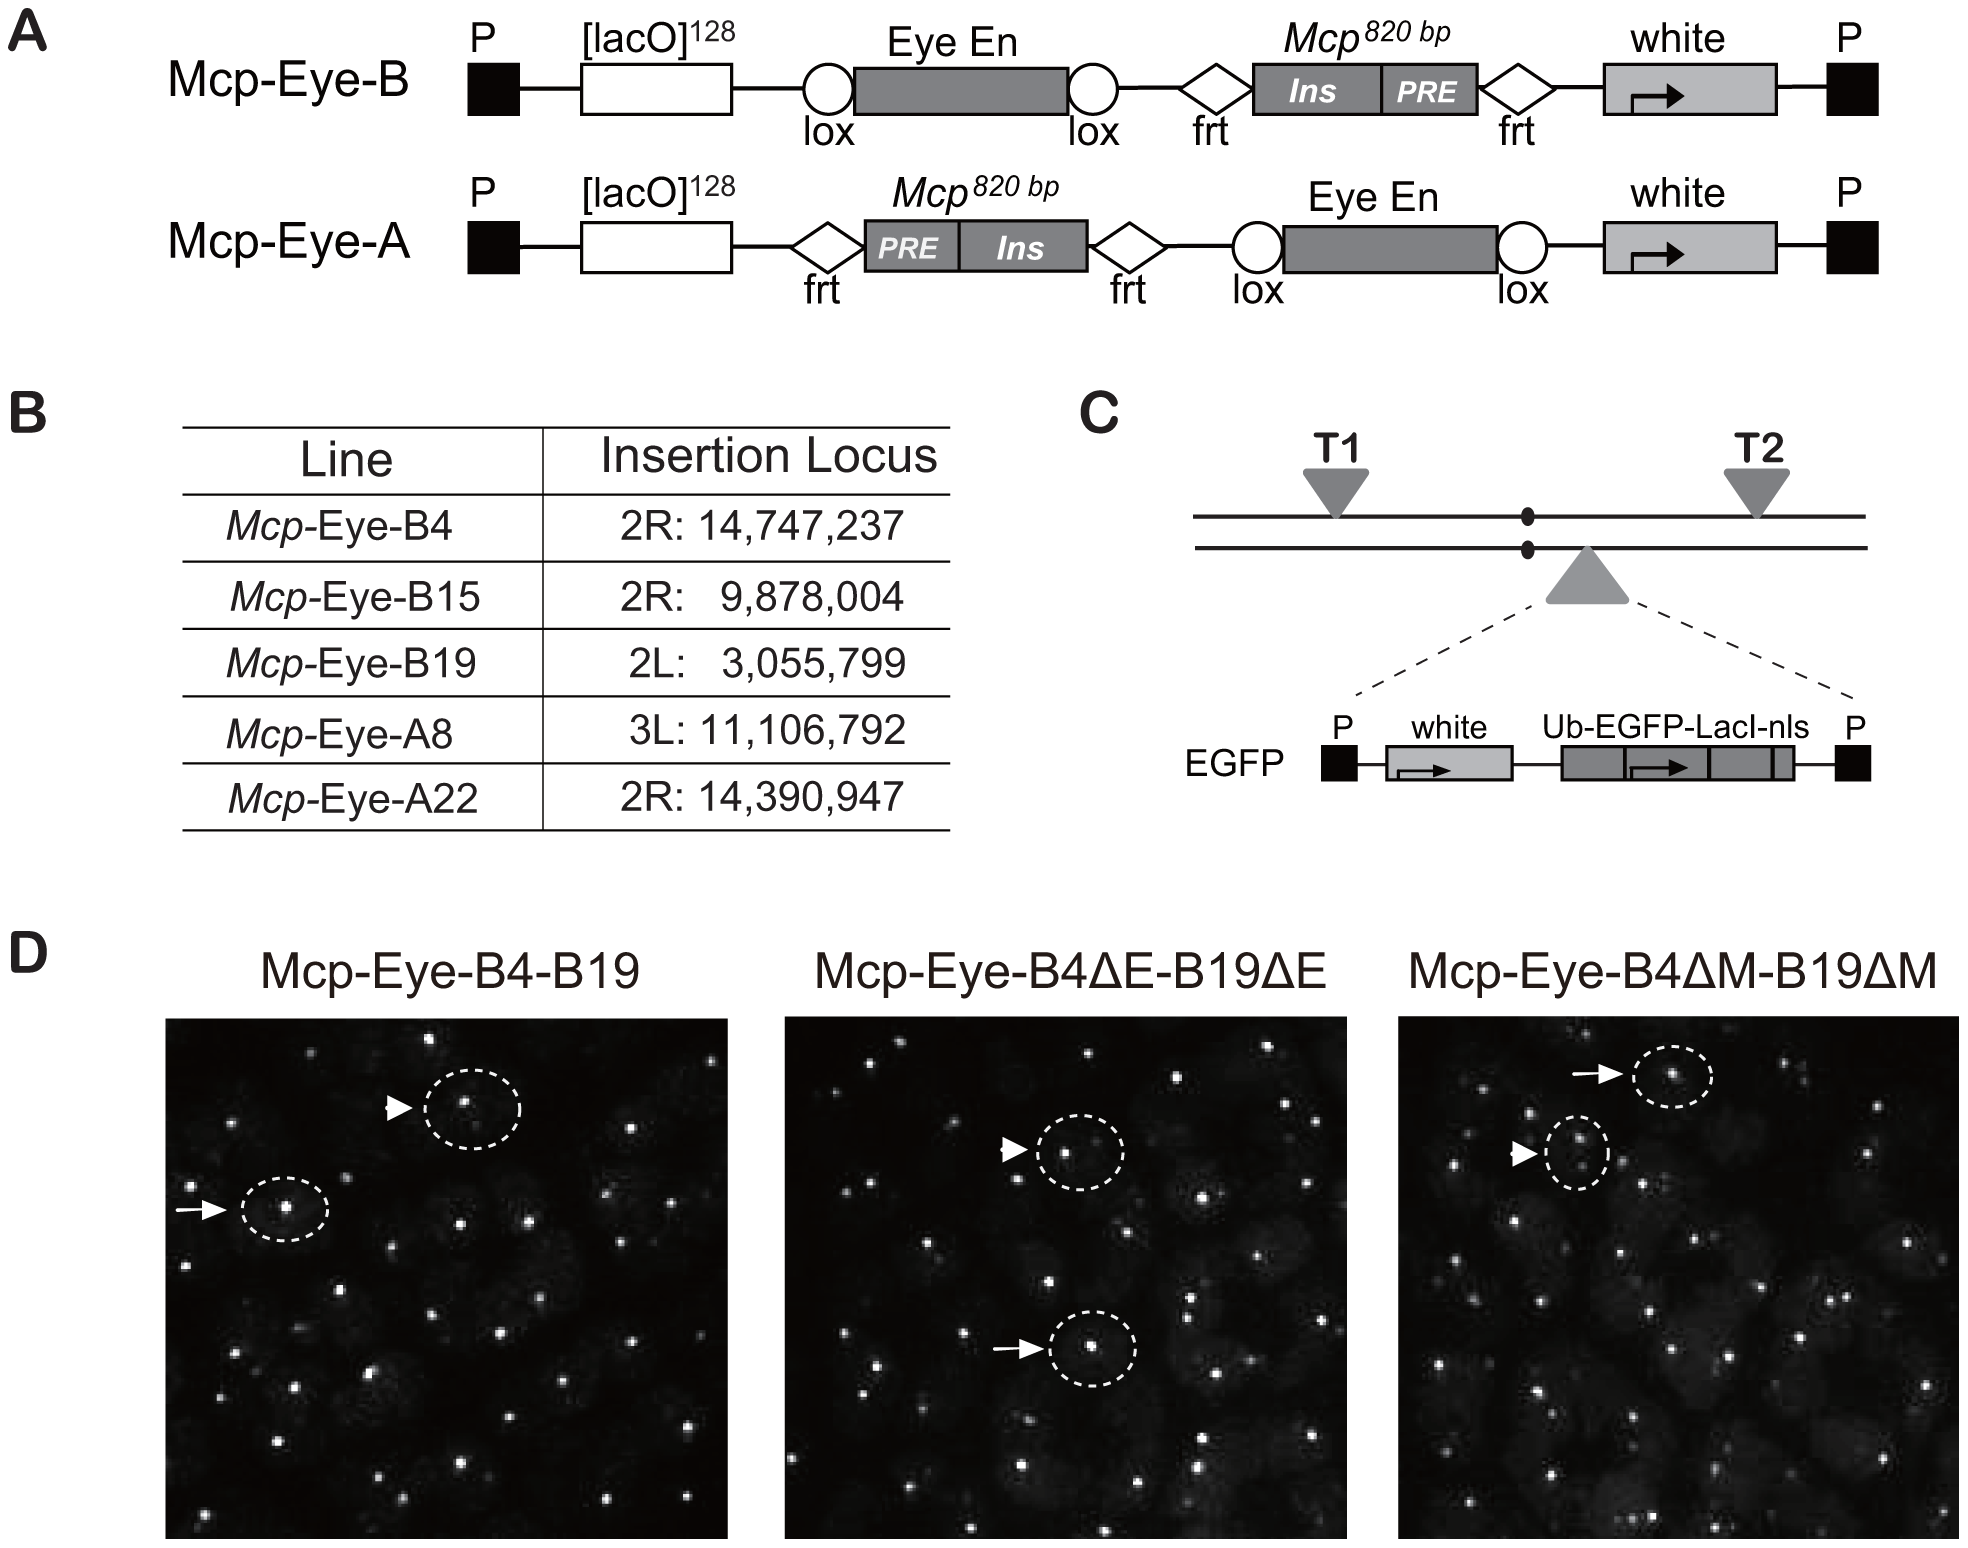 Transgene constructs to determine the effect of the Eye enhancer on co-localization.